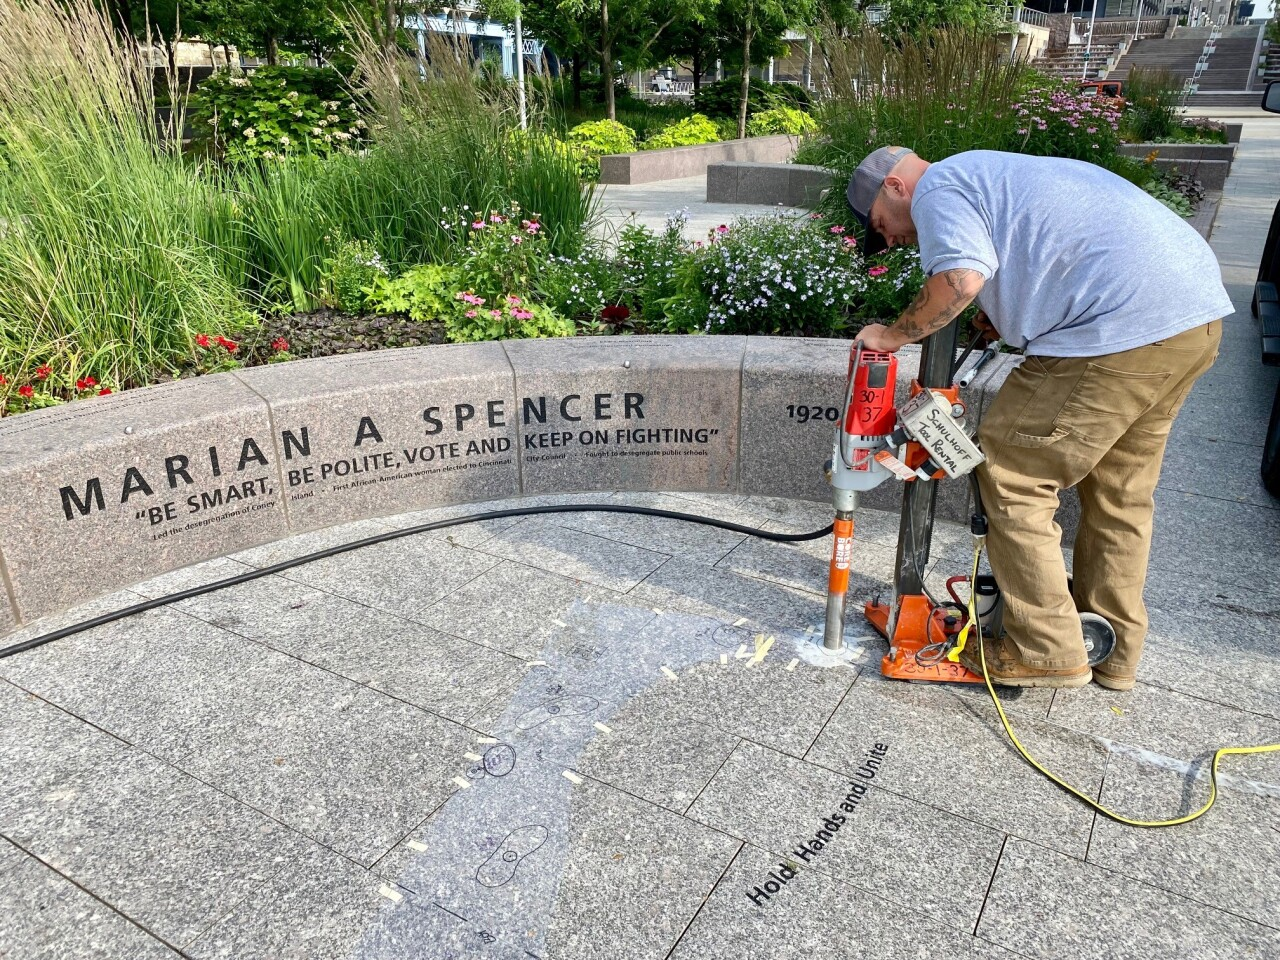 A worker prepares the area in Cincinnati's Smale Riverfront Park where a life-sized sculpture of Marian Spencer will be dedicated on June 27, 2021.